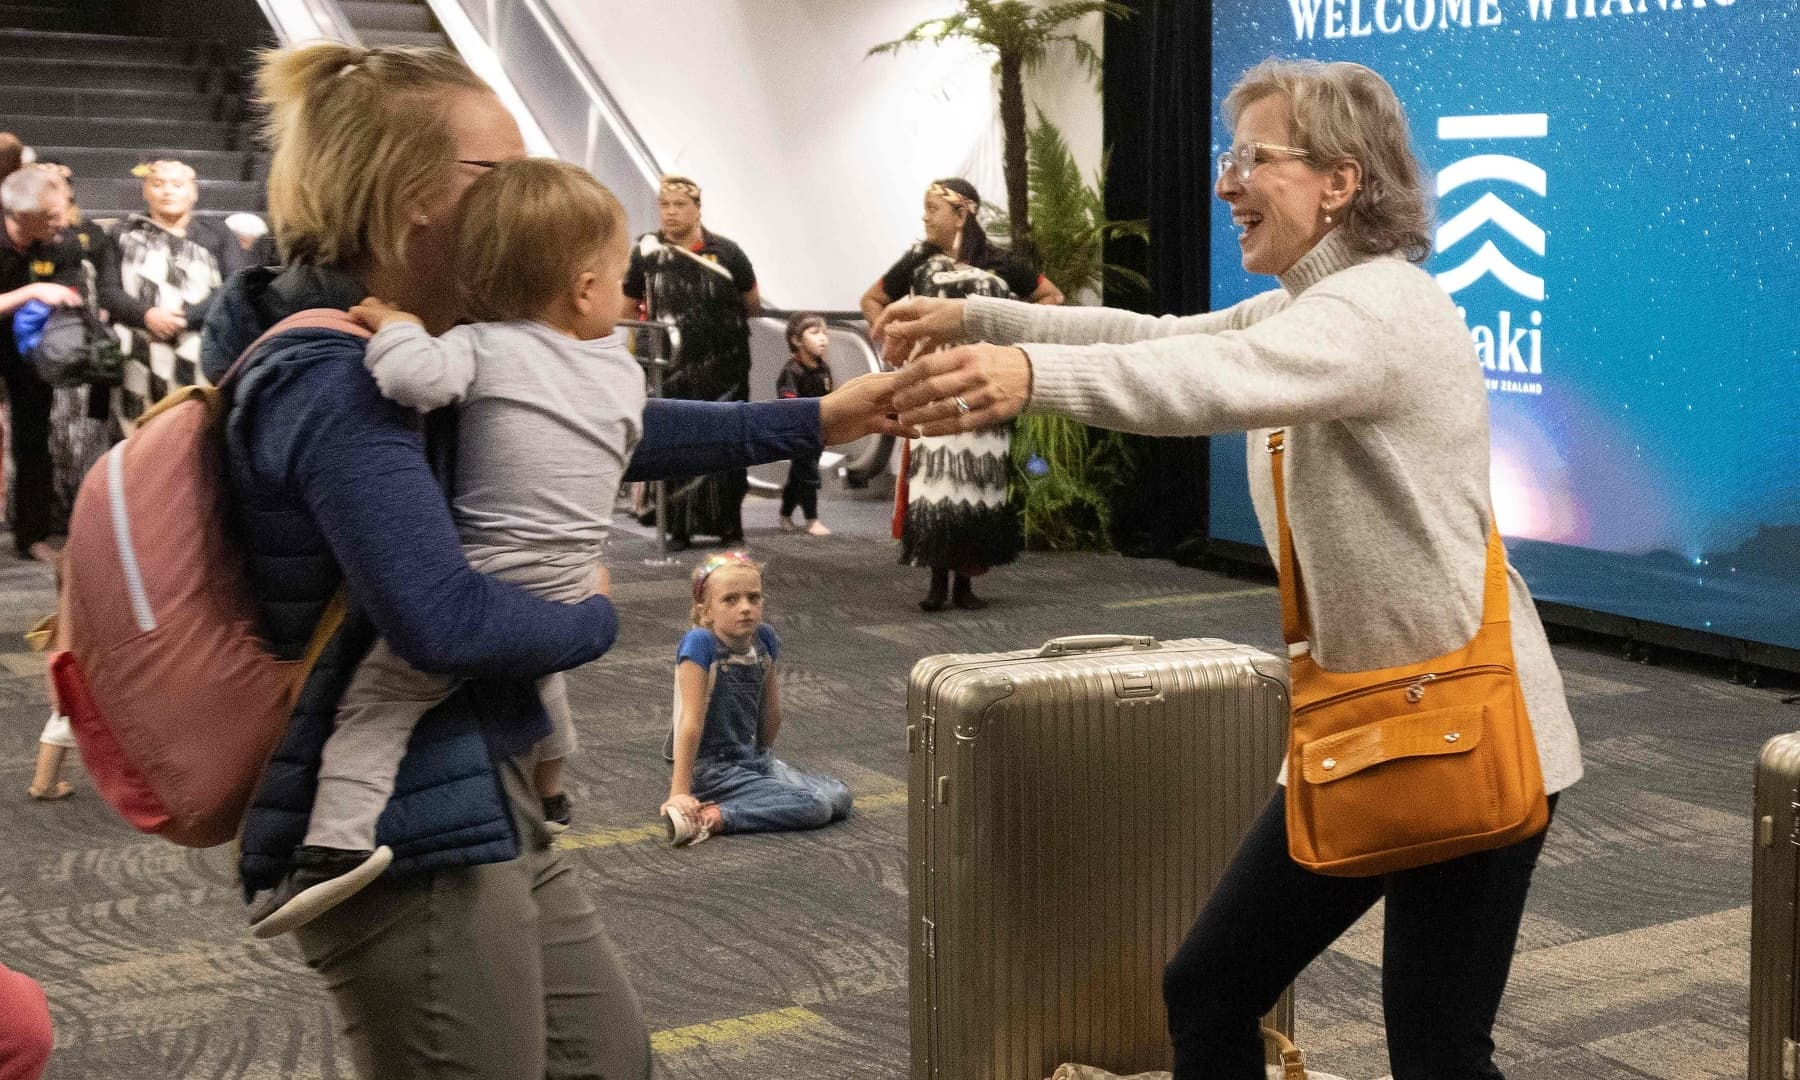 Families are reunited as travellers arrive on the first flight from Sydney, in Wellington on April 19. — AFP